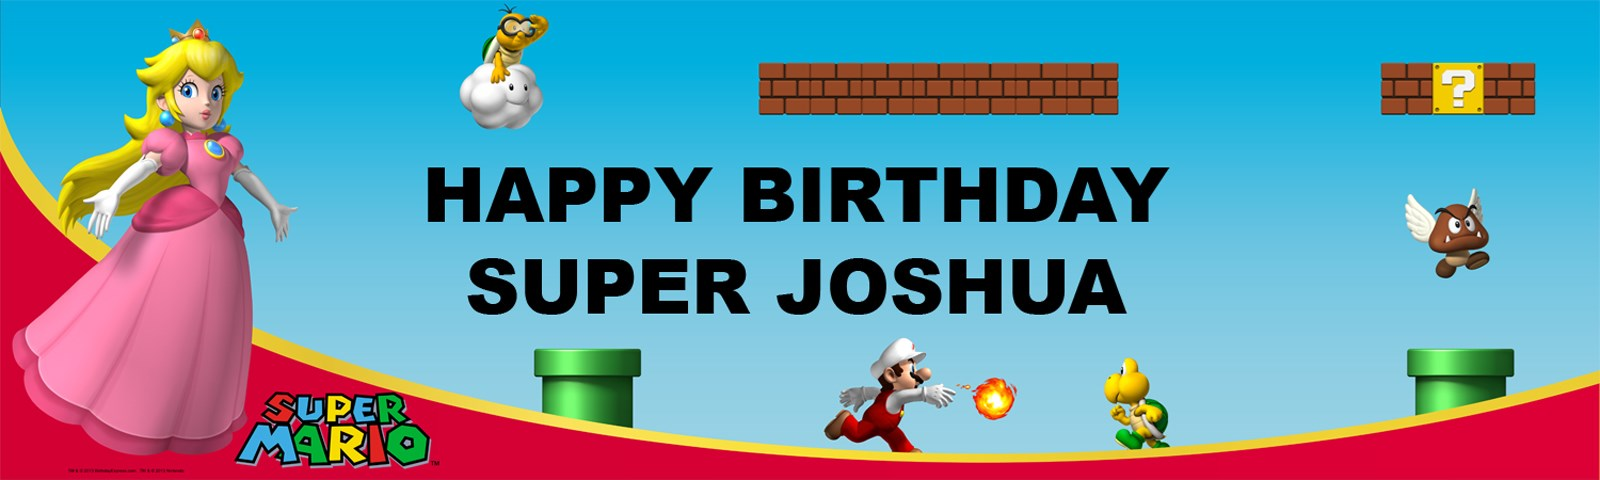 Super Mario Bros. - Princess Peach Personalized Birthday Banner